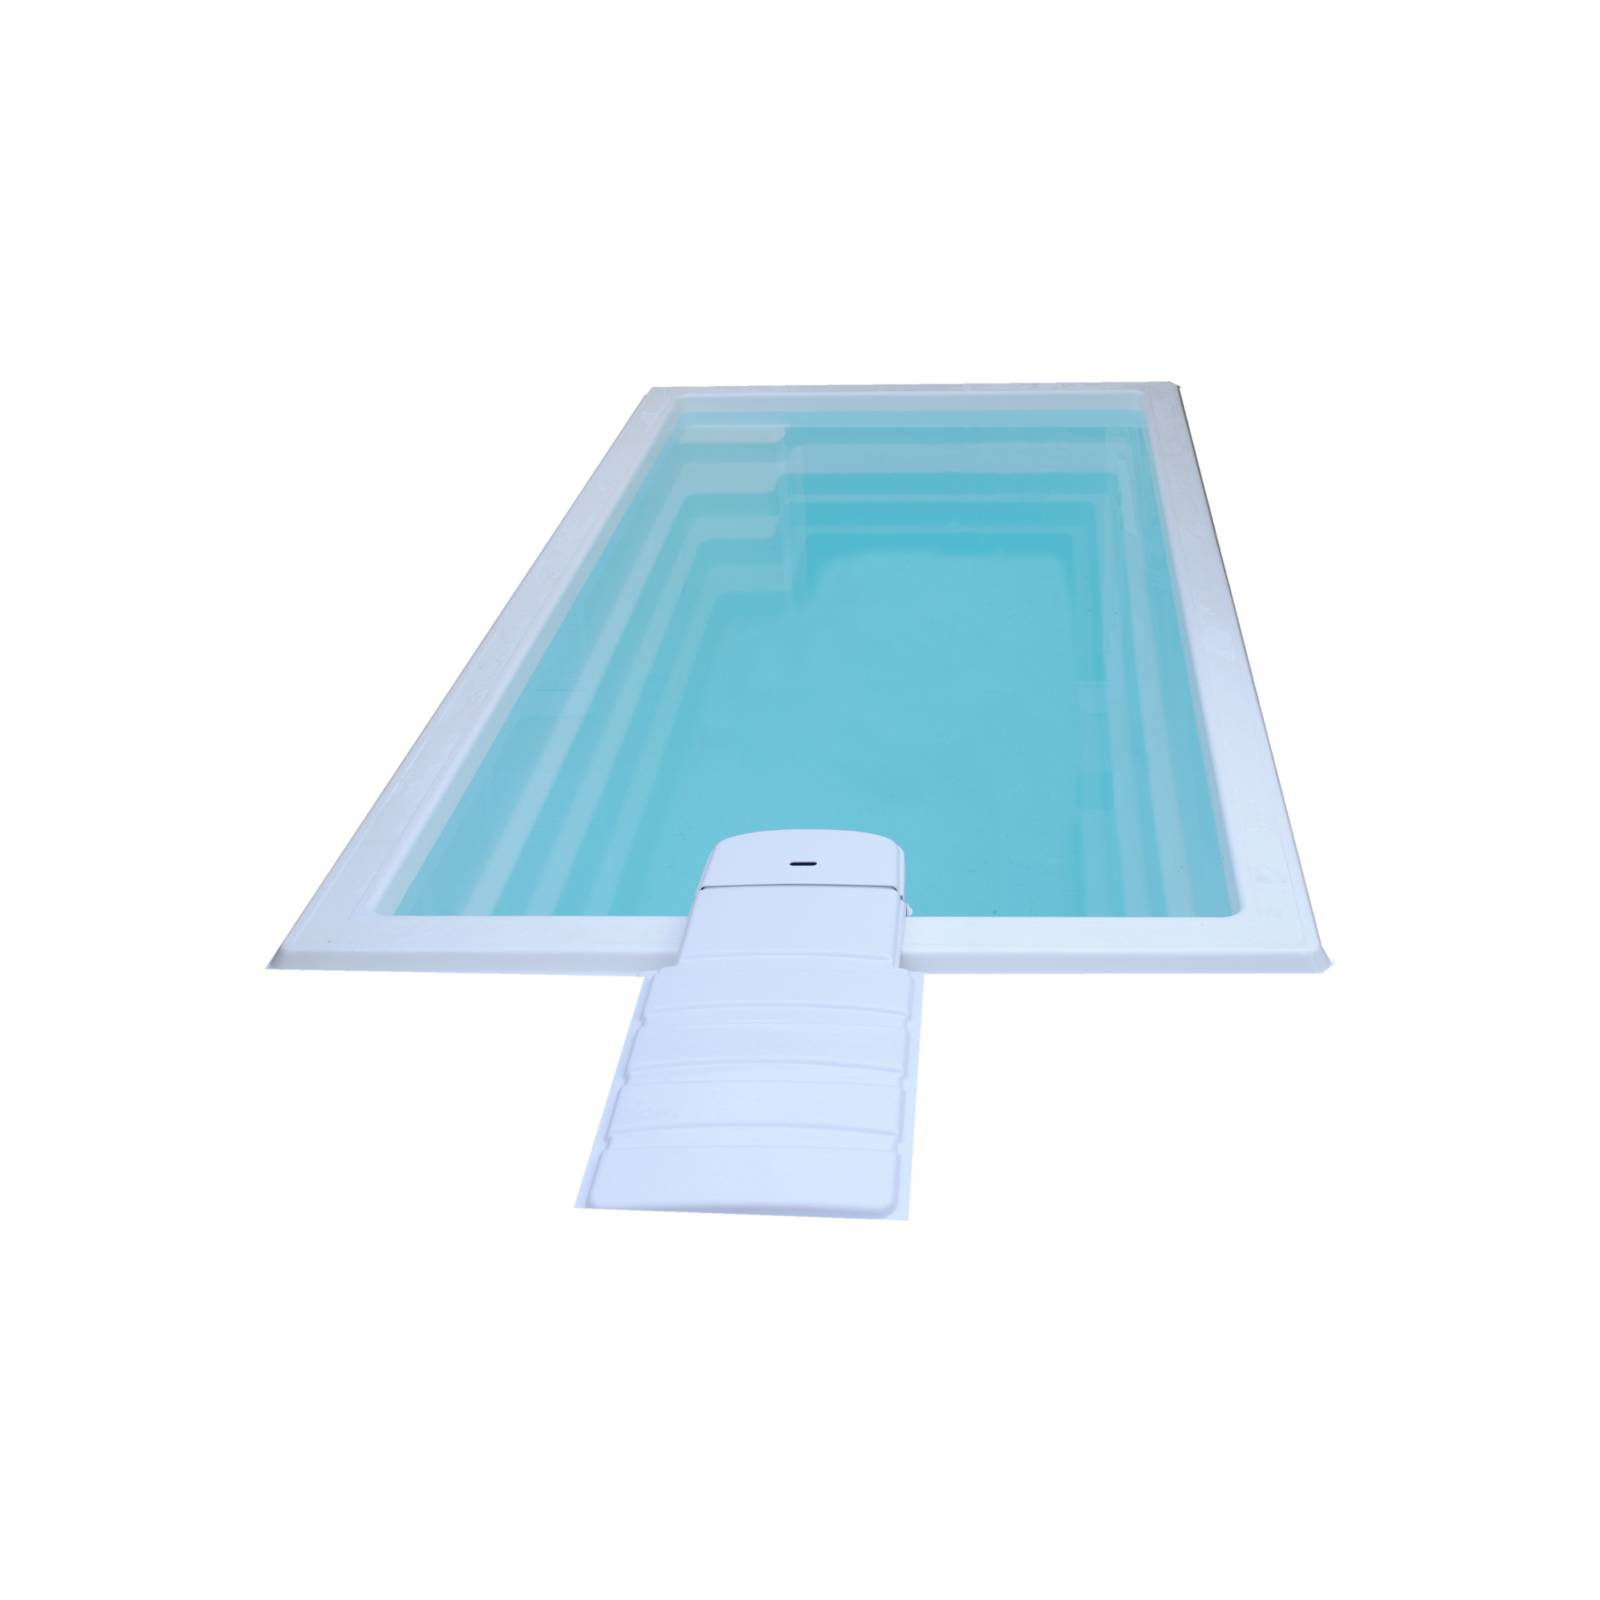 mini piscine bloc filtrant piscine en ligne arobase piscines. Black Bedroom Furniture Sets. Home Design Ideas